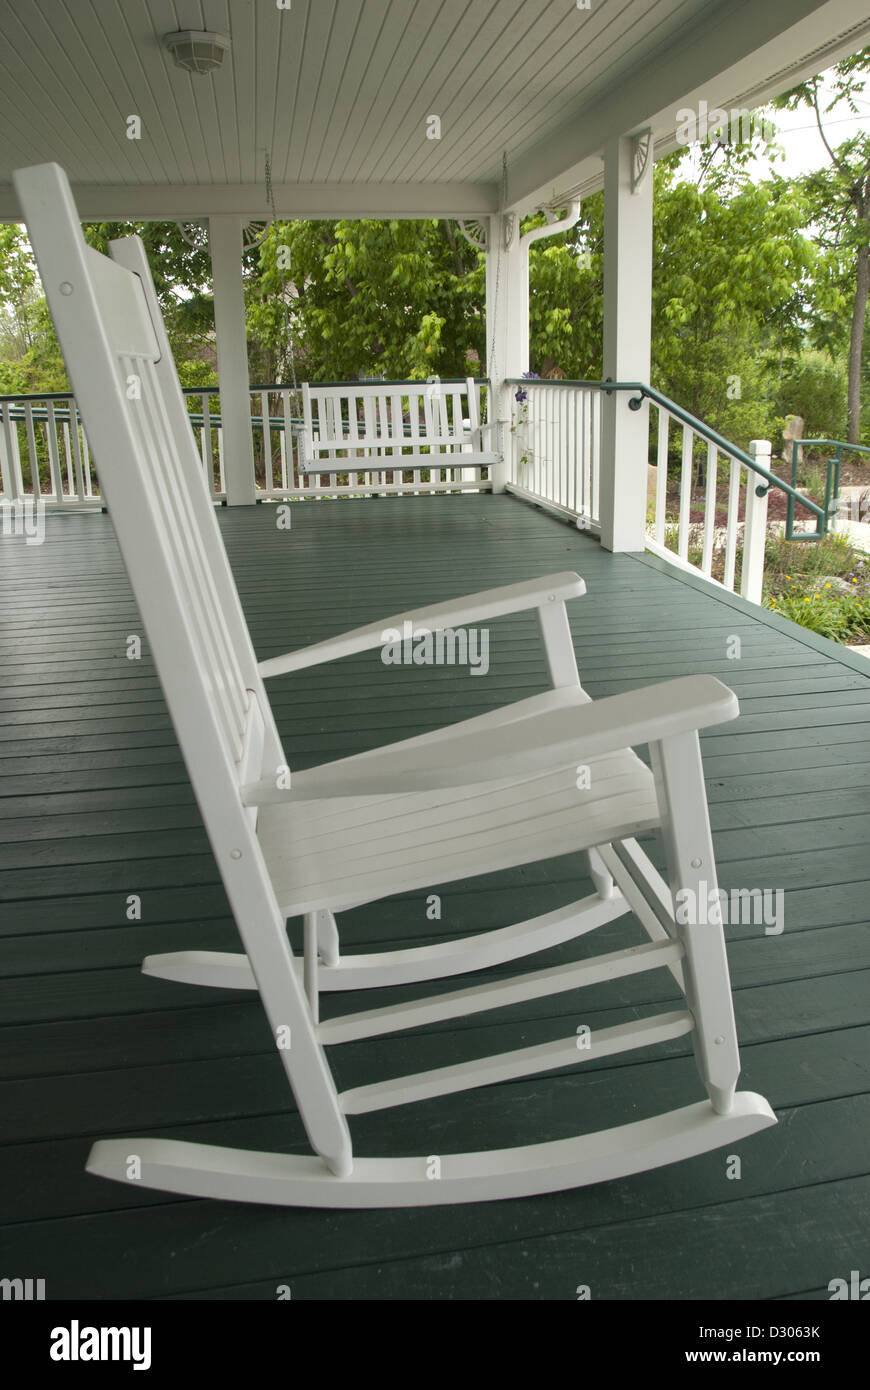 Charmant Rocking Chairs On House Porch In North Carolina, USA